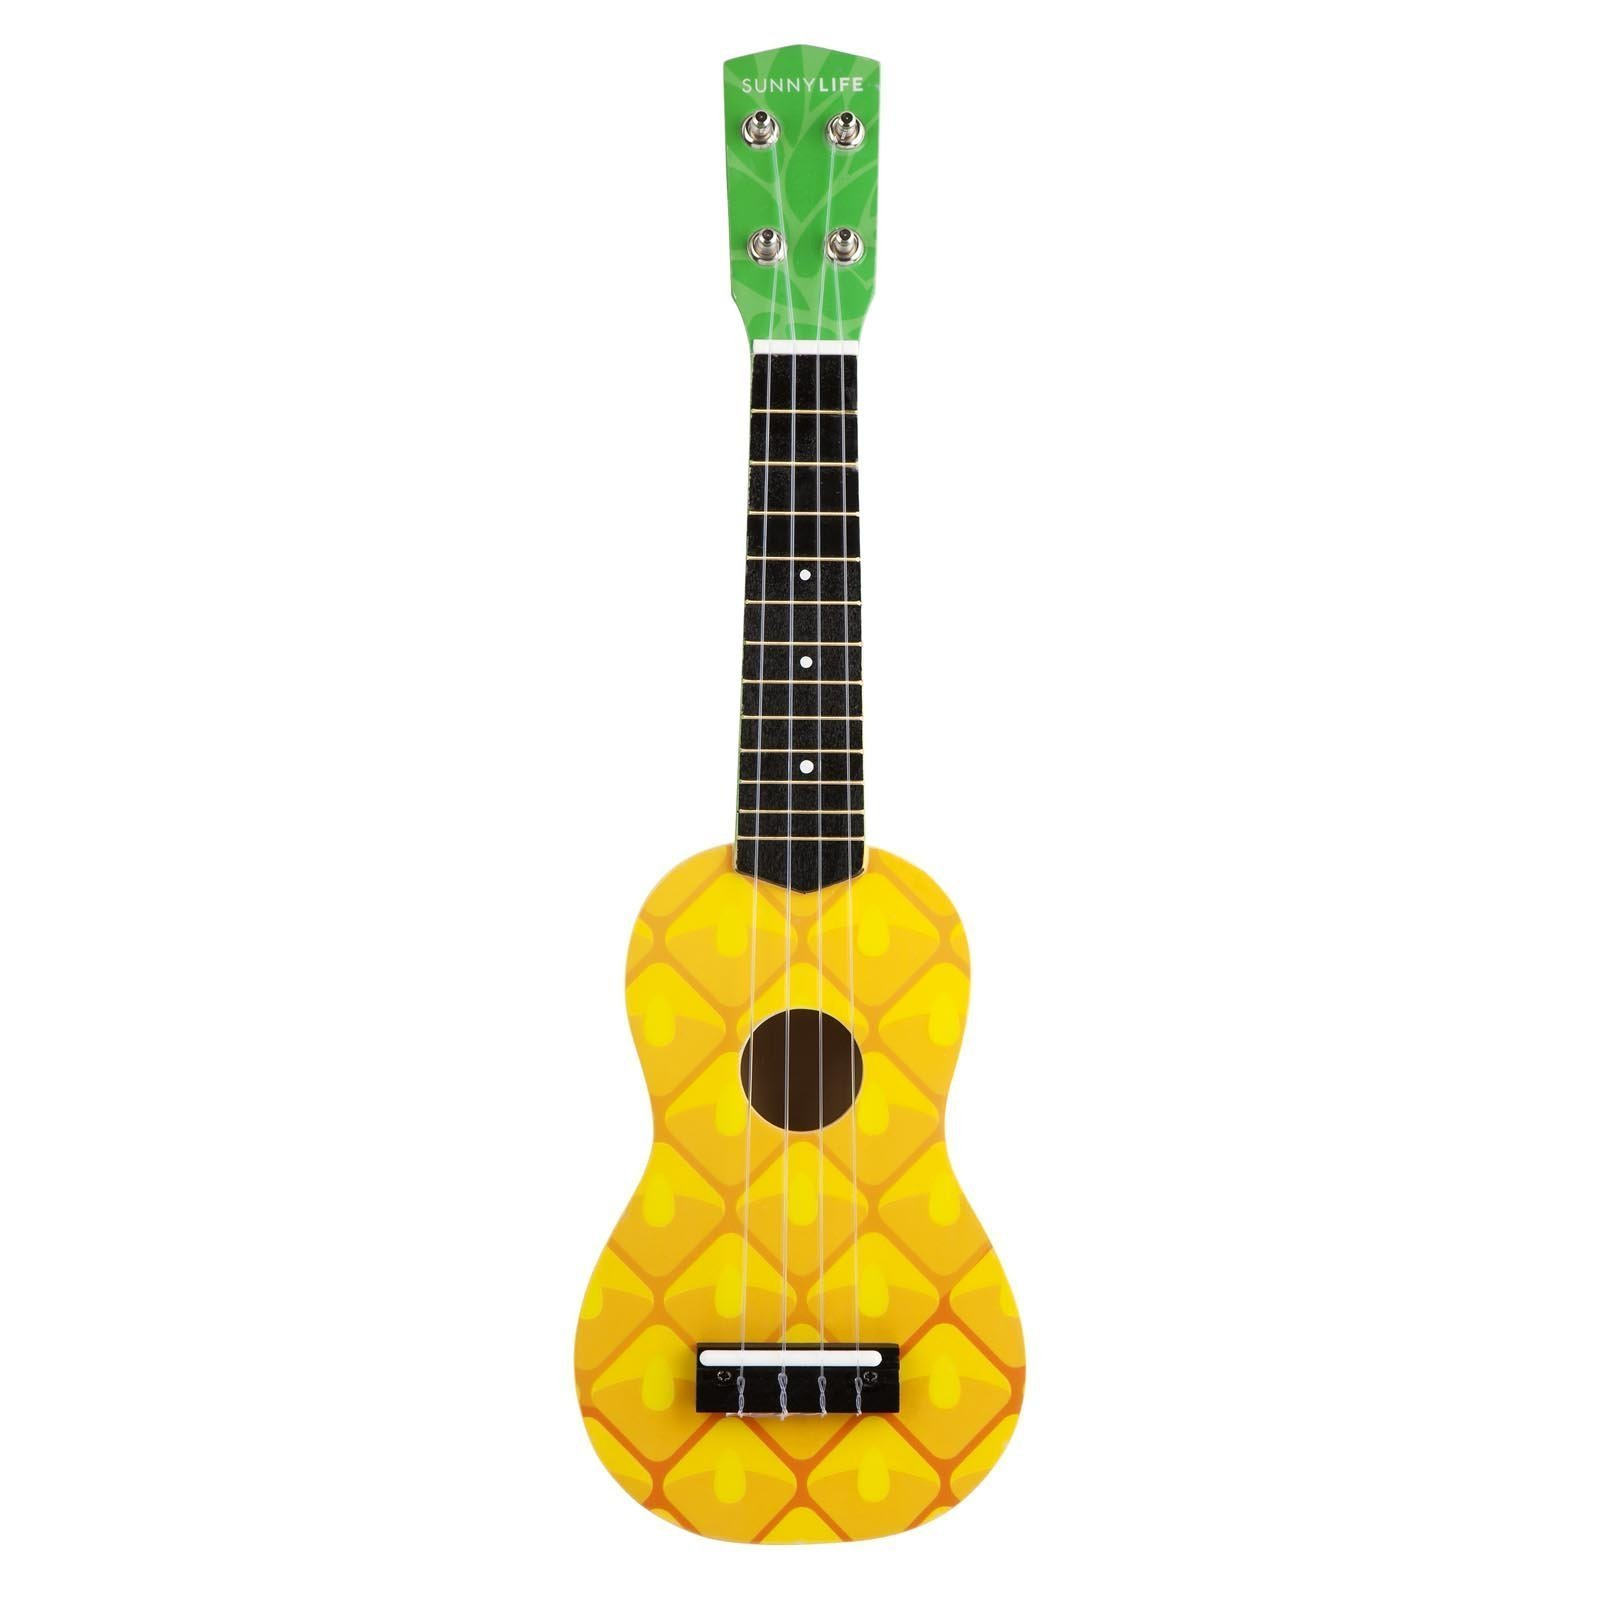 https://www.sunnylife.com/collections/all-products/products/ukulele-pineapple-ss18